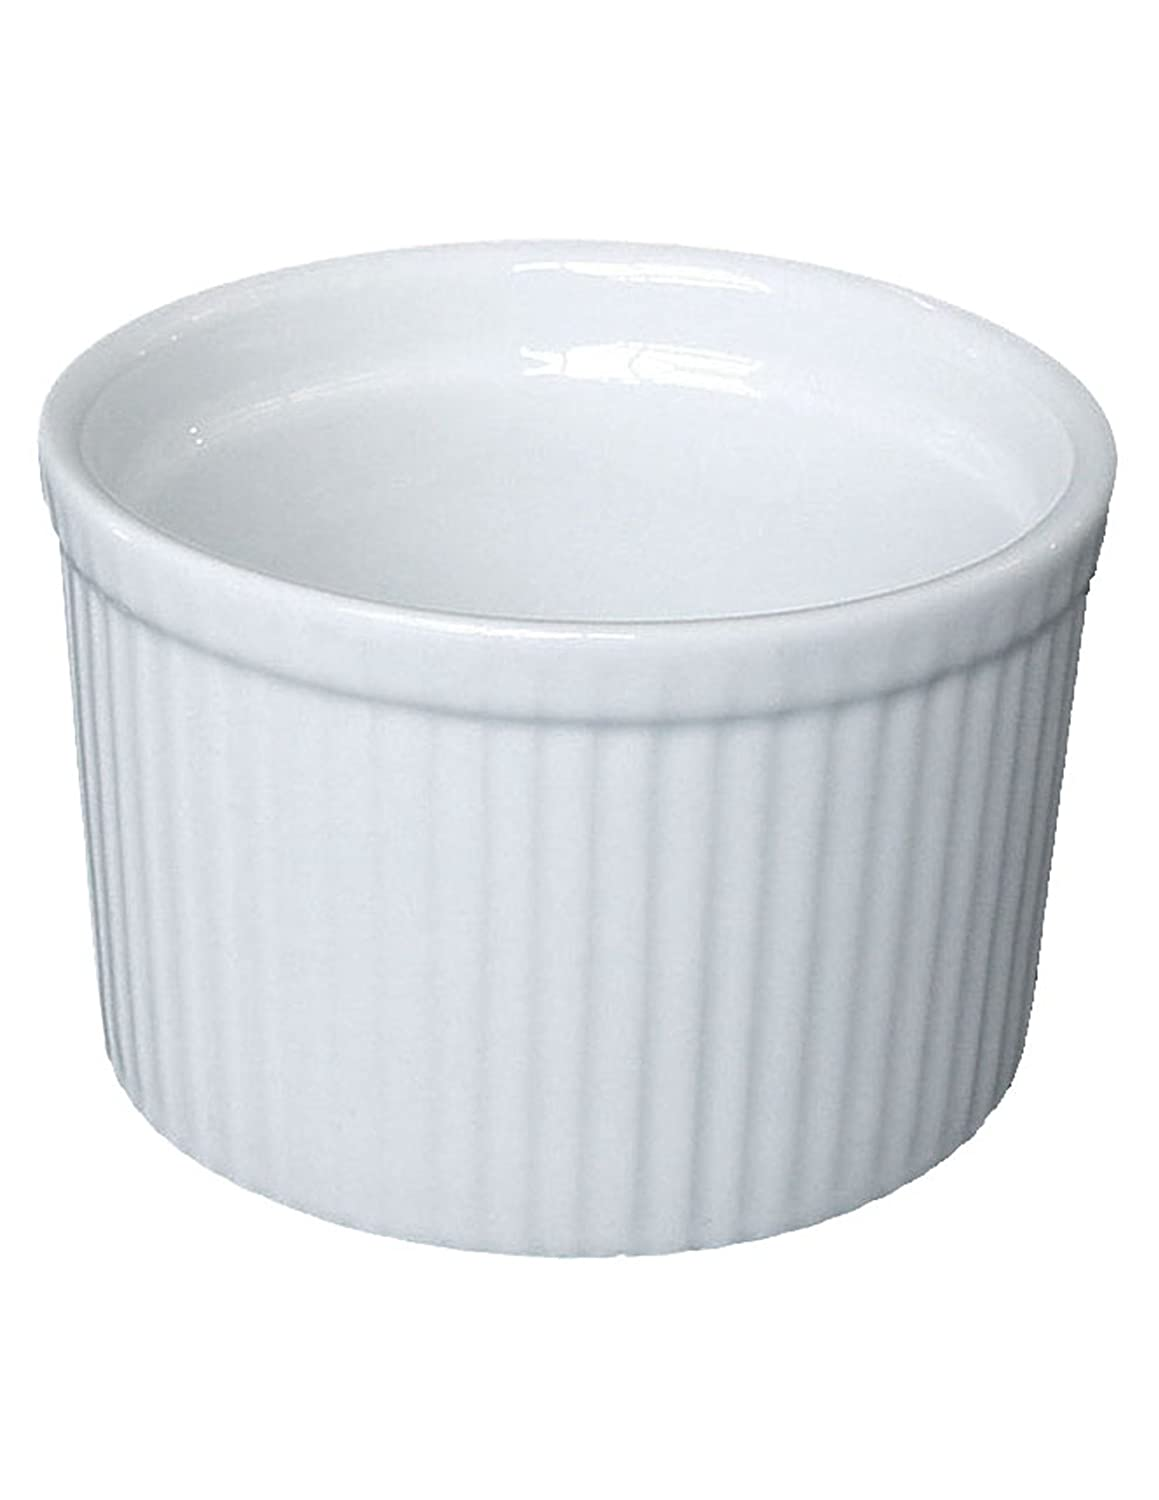 Bia Cordon Bleu White Porcelain 10-Ounce Tall Individual Souffle, Set of 4 900020S4